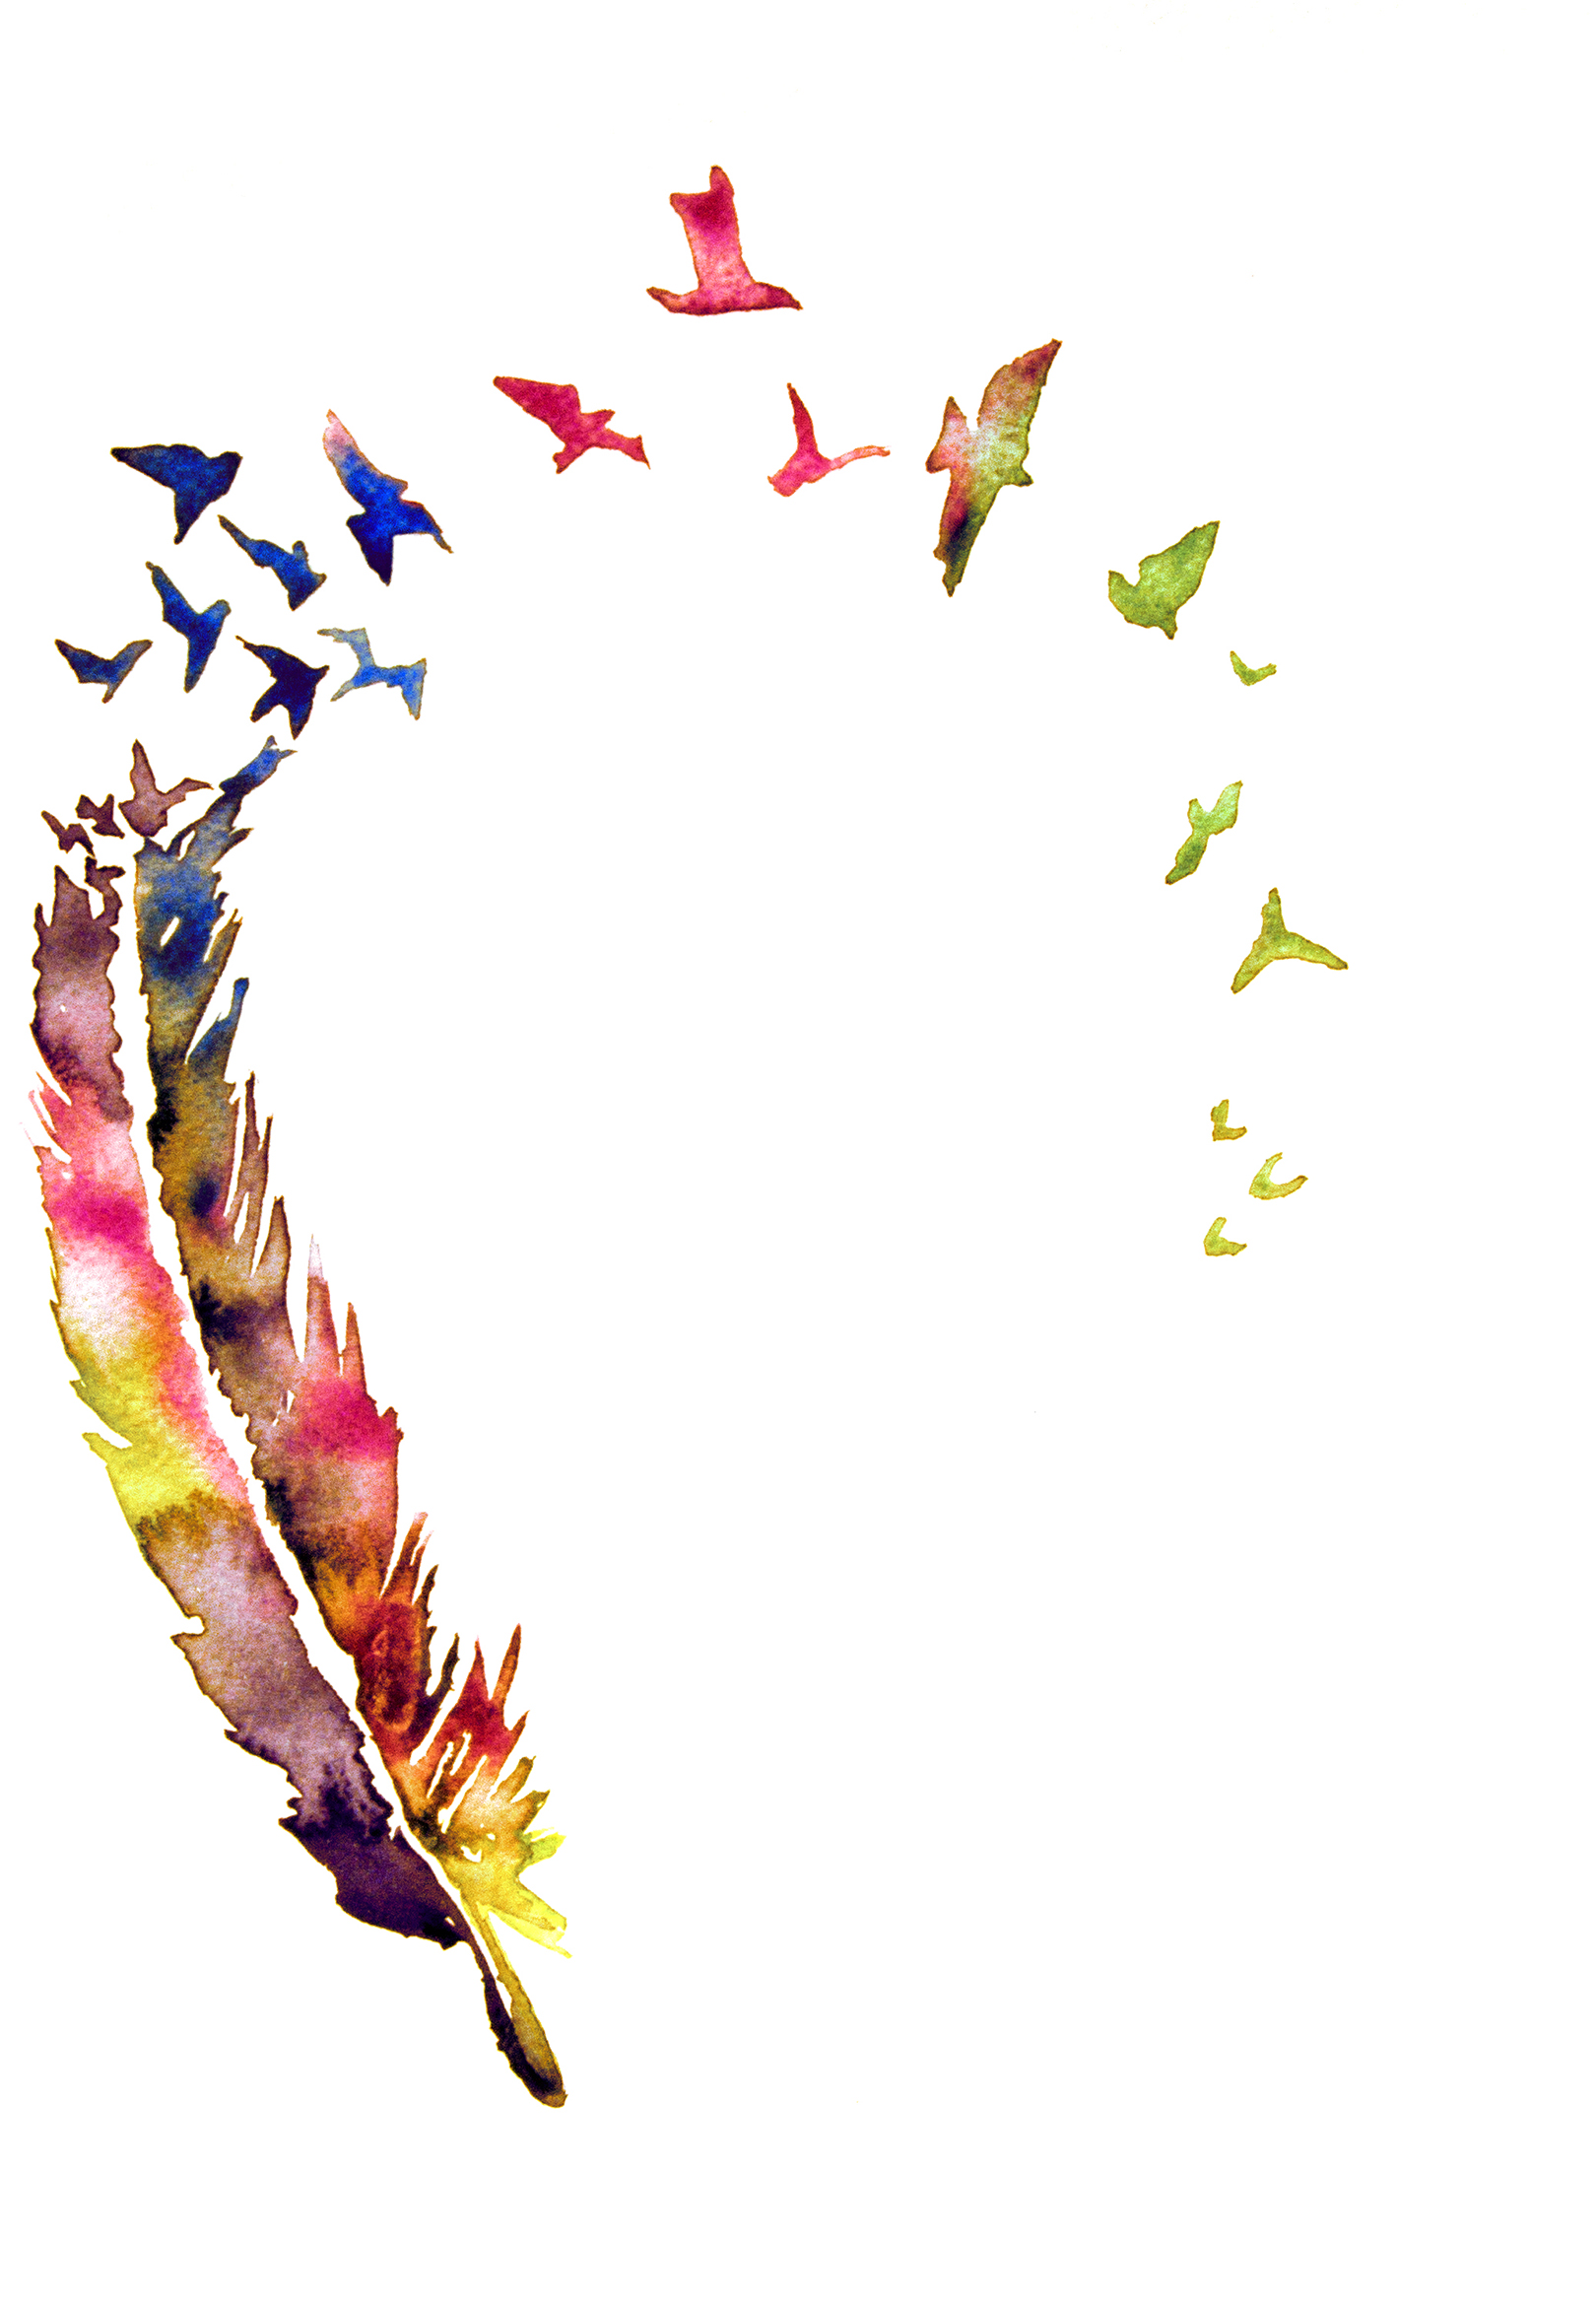 Feather With Birds Downloadable Image Watercolor